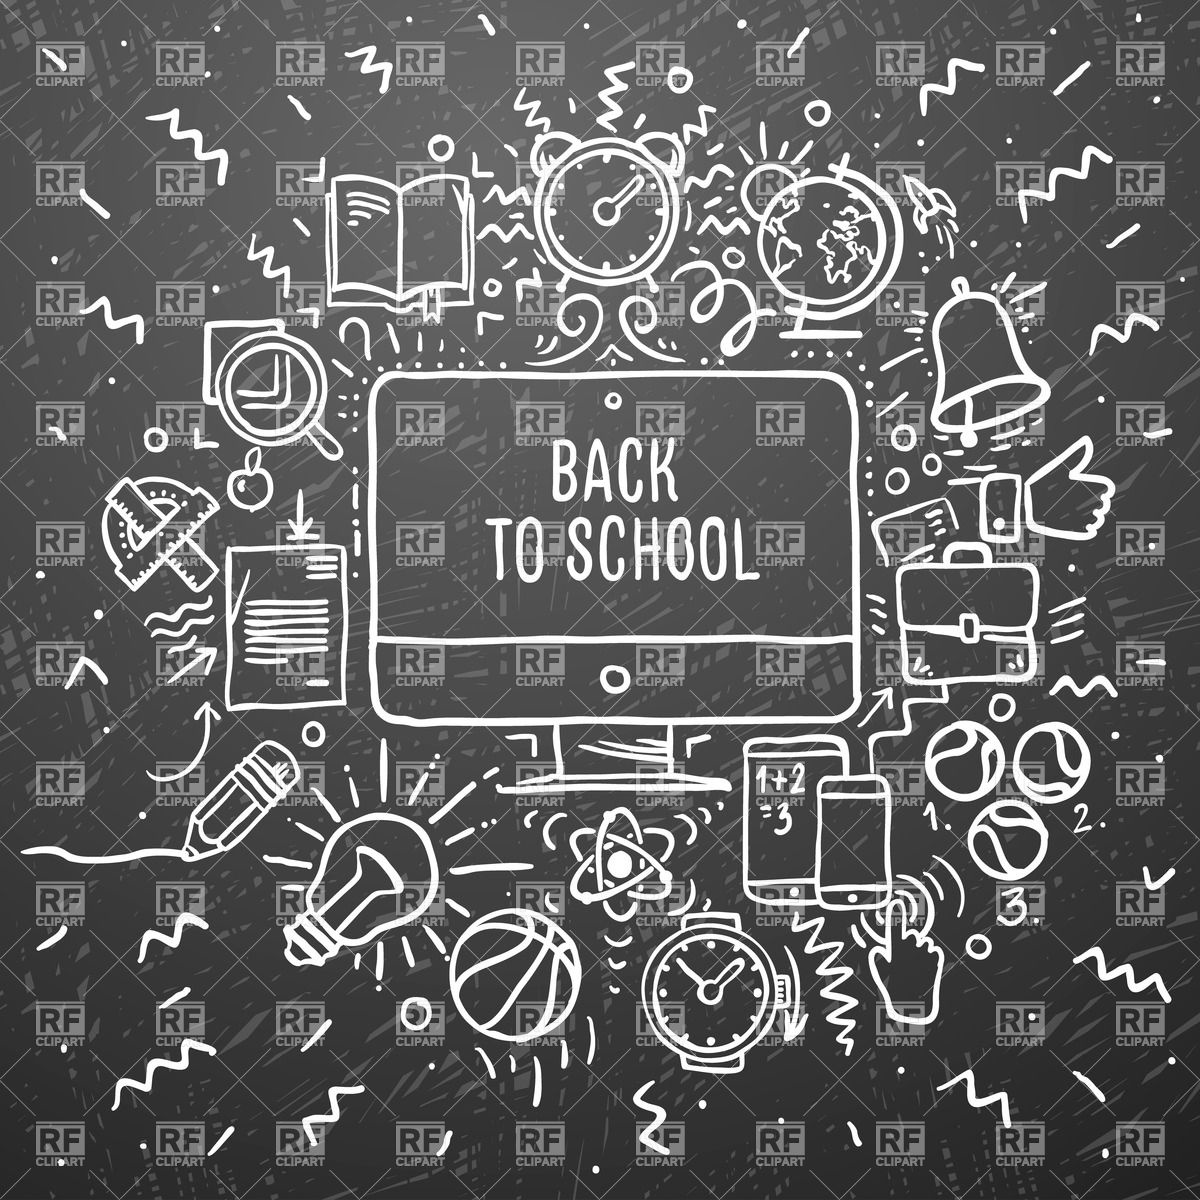 Chalkboard clip art download image freeuse Back to School - freehand chalk drawing of school items on the ... image freeuse